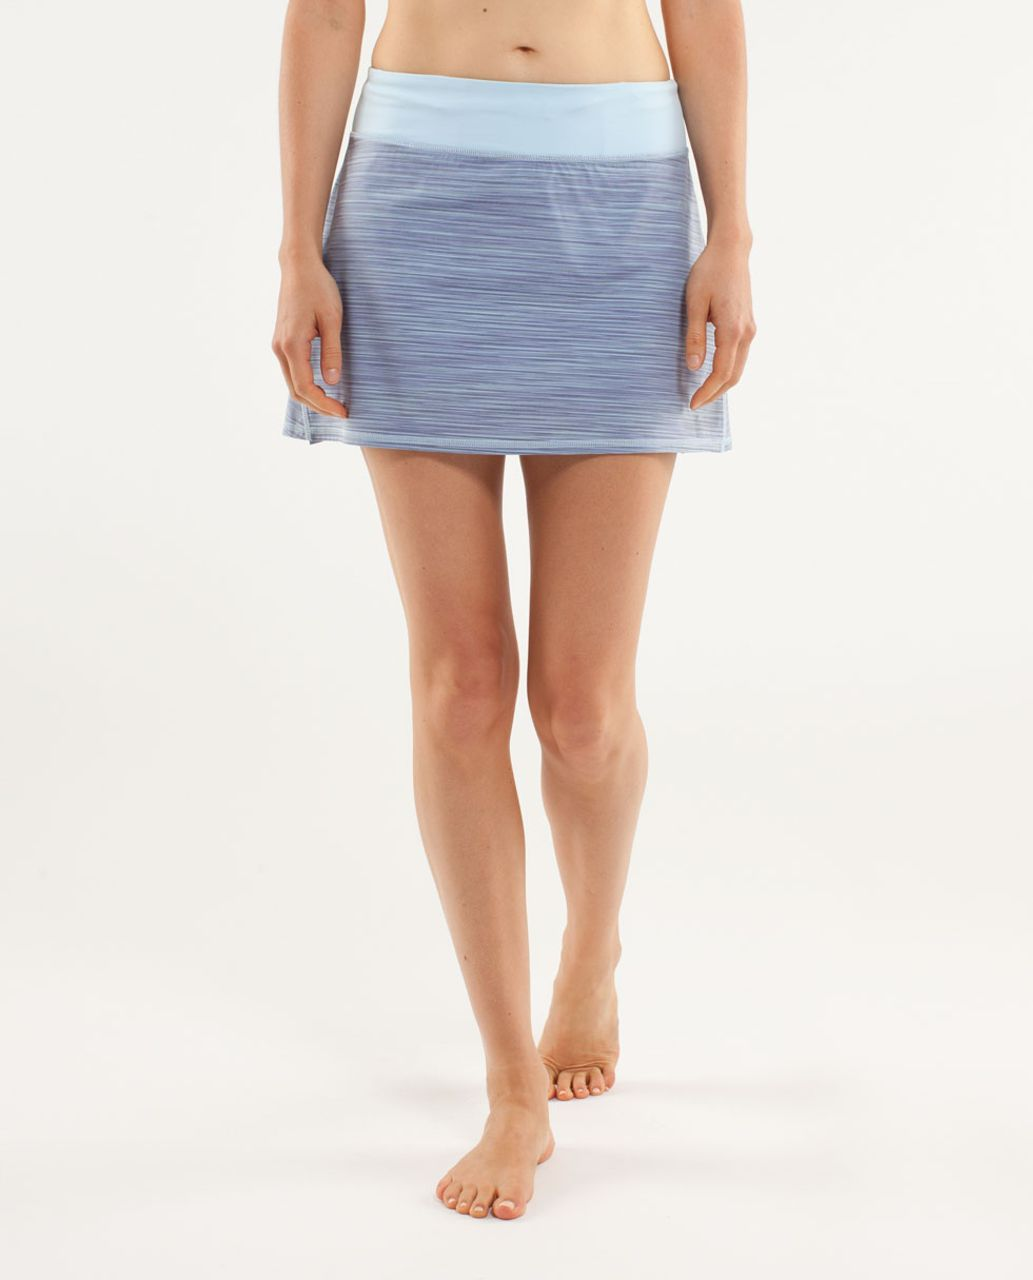 Lululemon Run:  Pace Setter Skirt (Regular) - Twisted Stripe Caspian Blue / Caspian Blue